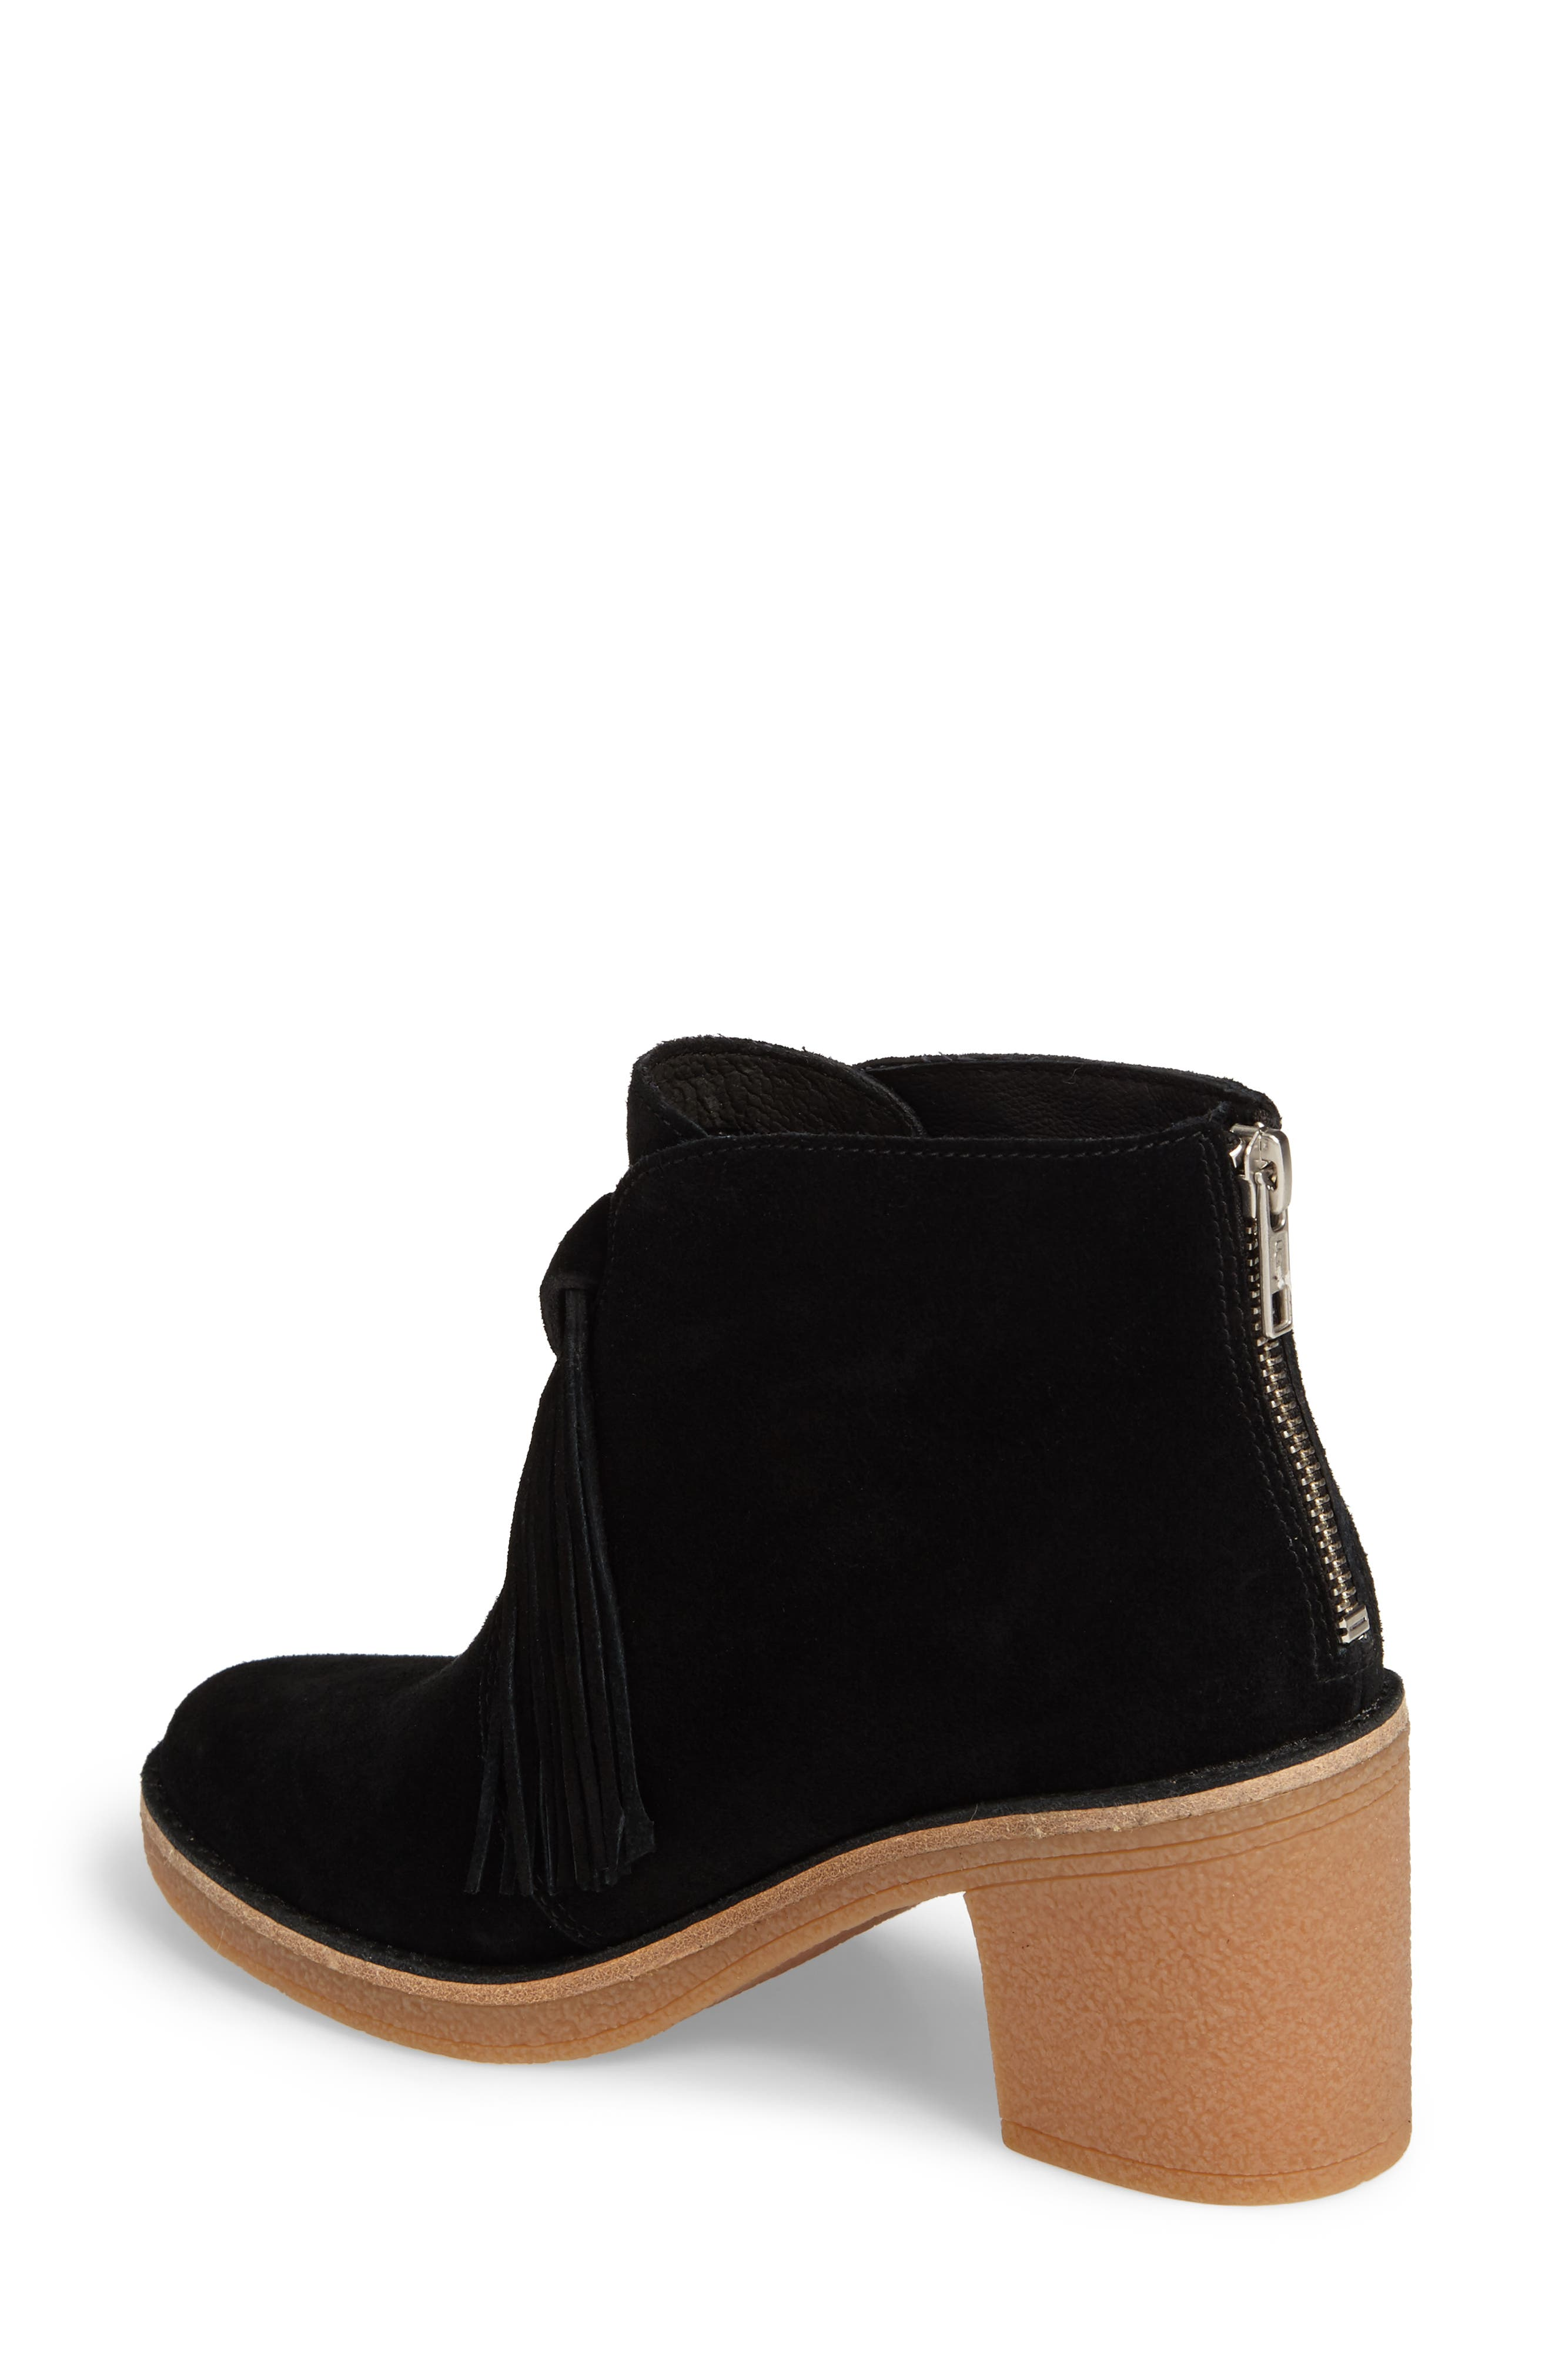 Corin Fringe Tassel Bootie,                             Alternate thumbnail 2, color,                             001